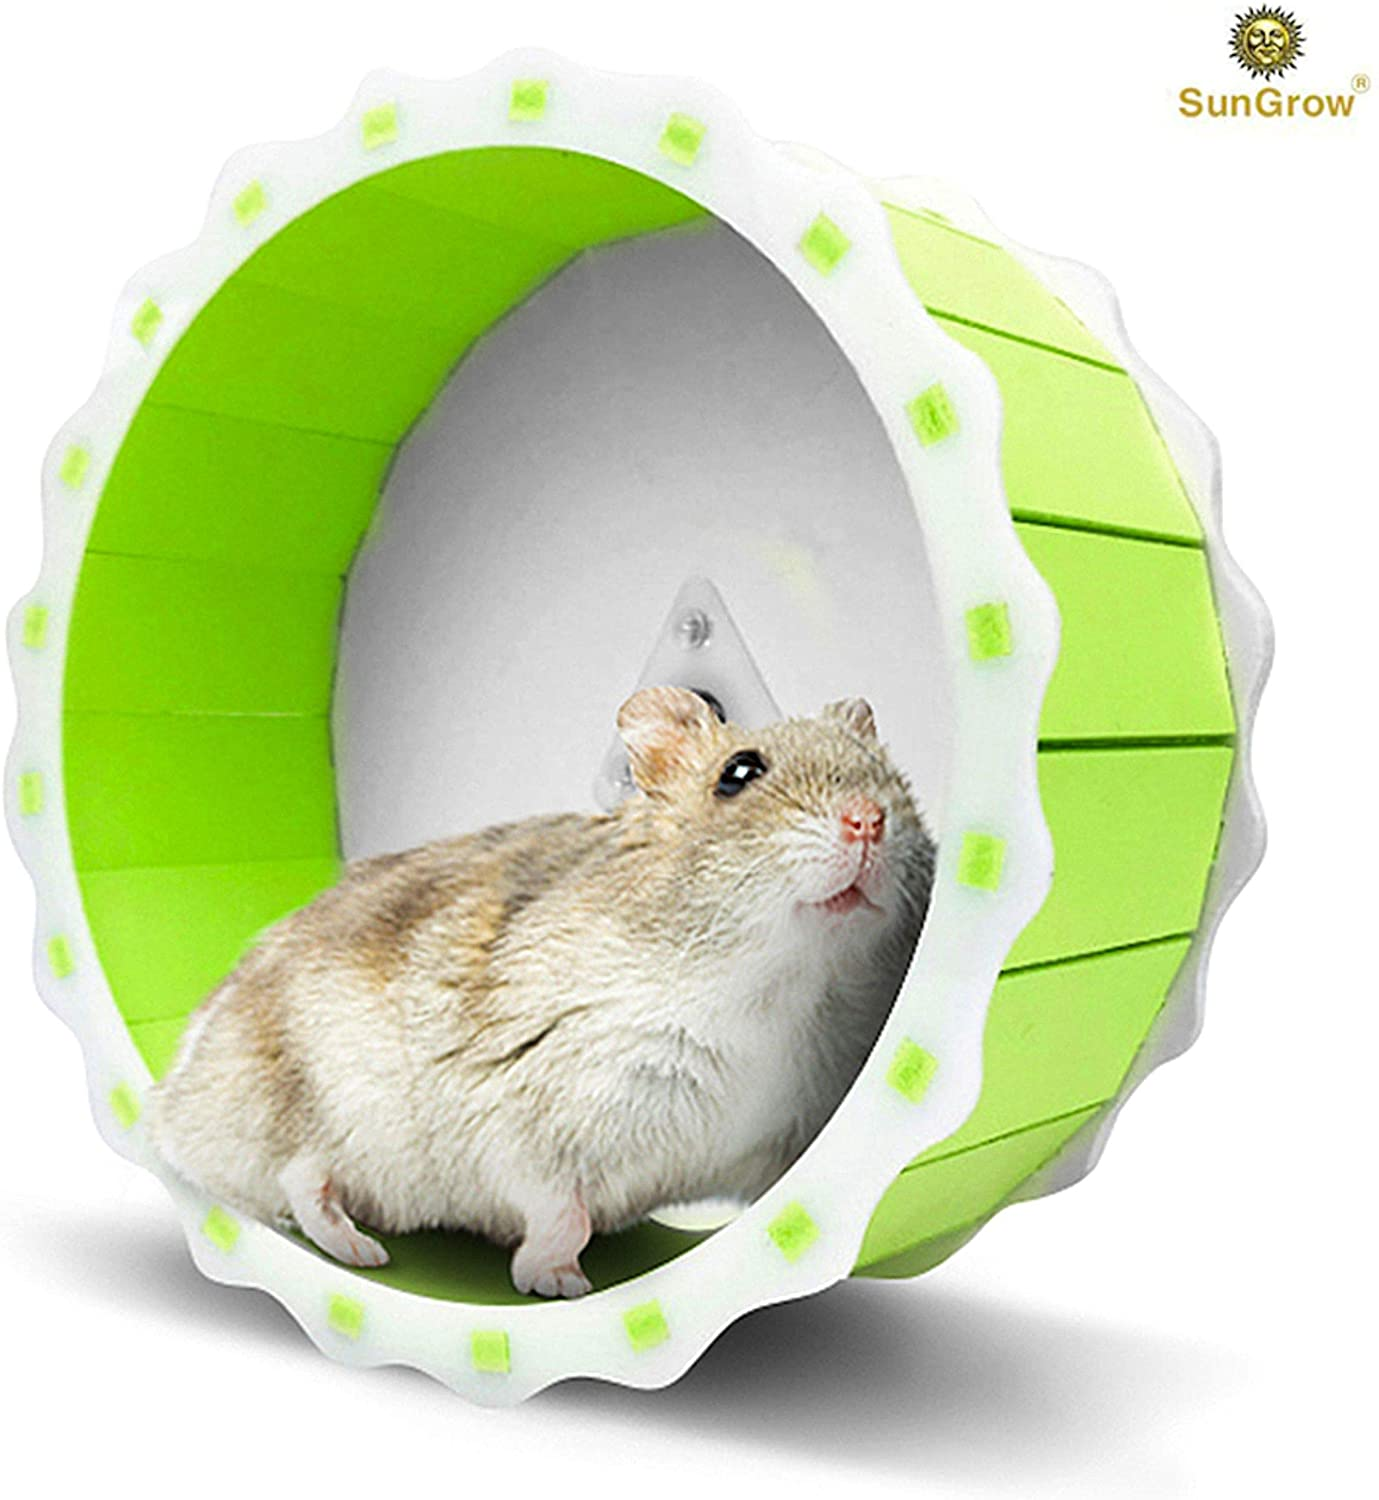 """Hamster Spinner Wheel, Quiet Exercise Toy, Installation in Less Than 5 Minutes, Keeps Small Pets Active & Entertained, Durable PVC Plastic Material, 6.7"""" Diameter Fits Hamsters, Gerbils & Mice"""